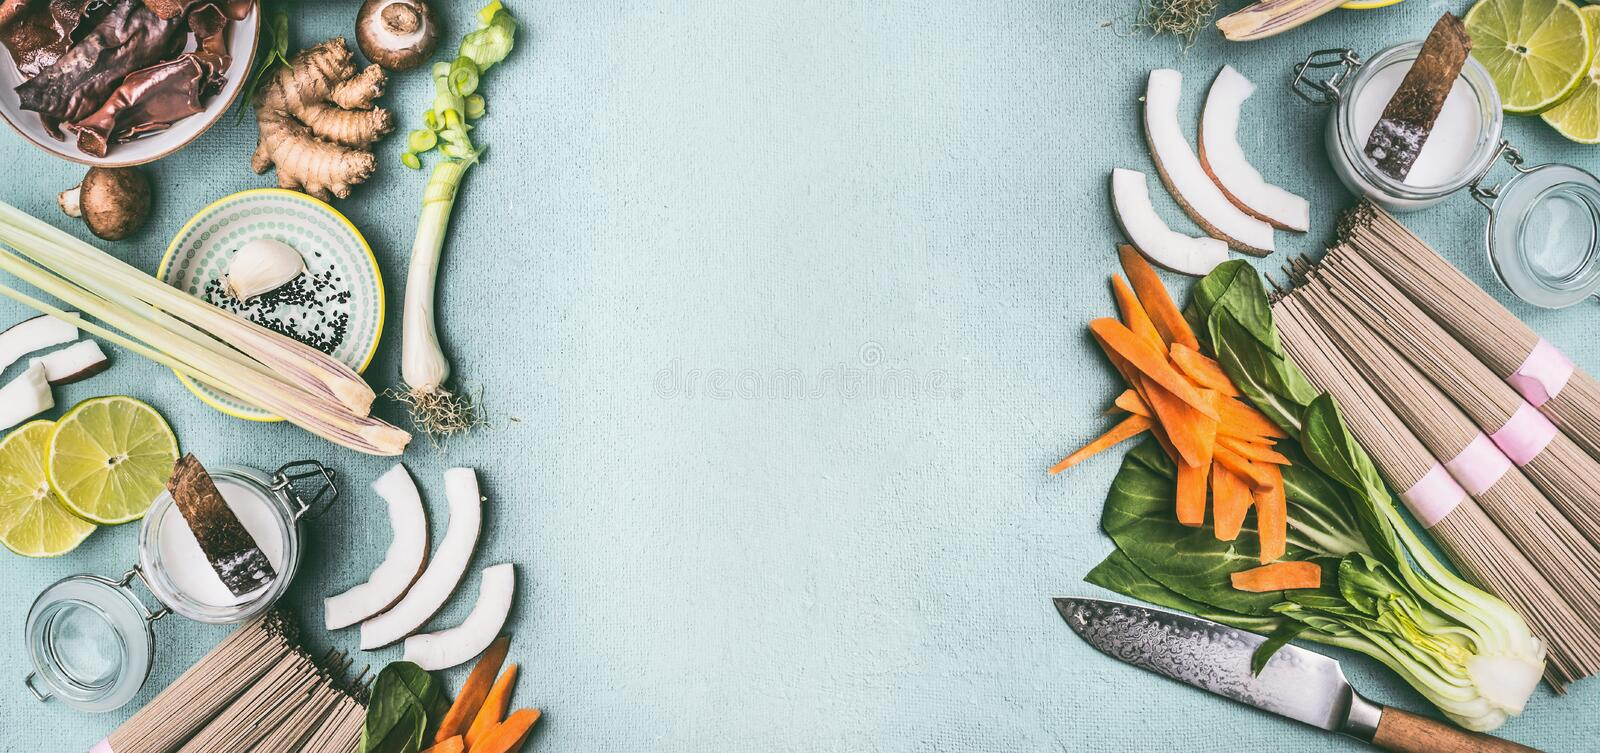 Asian food background frame with various traditional cooking ingredients: noodles, vegetables and spices, top view, flat lay. Chinese or Thai cuisine. Vegan stock photos